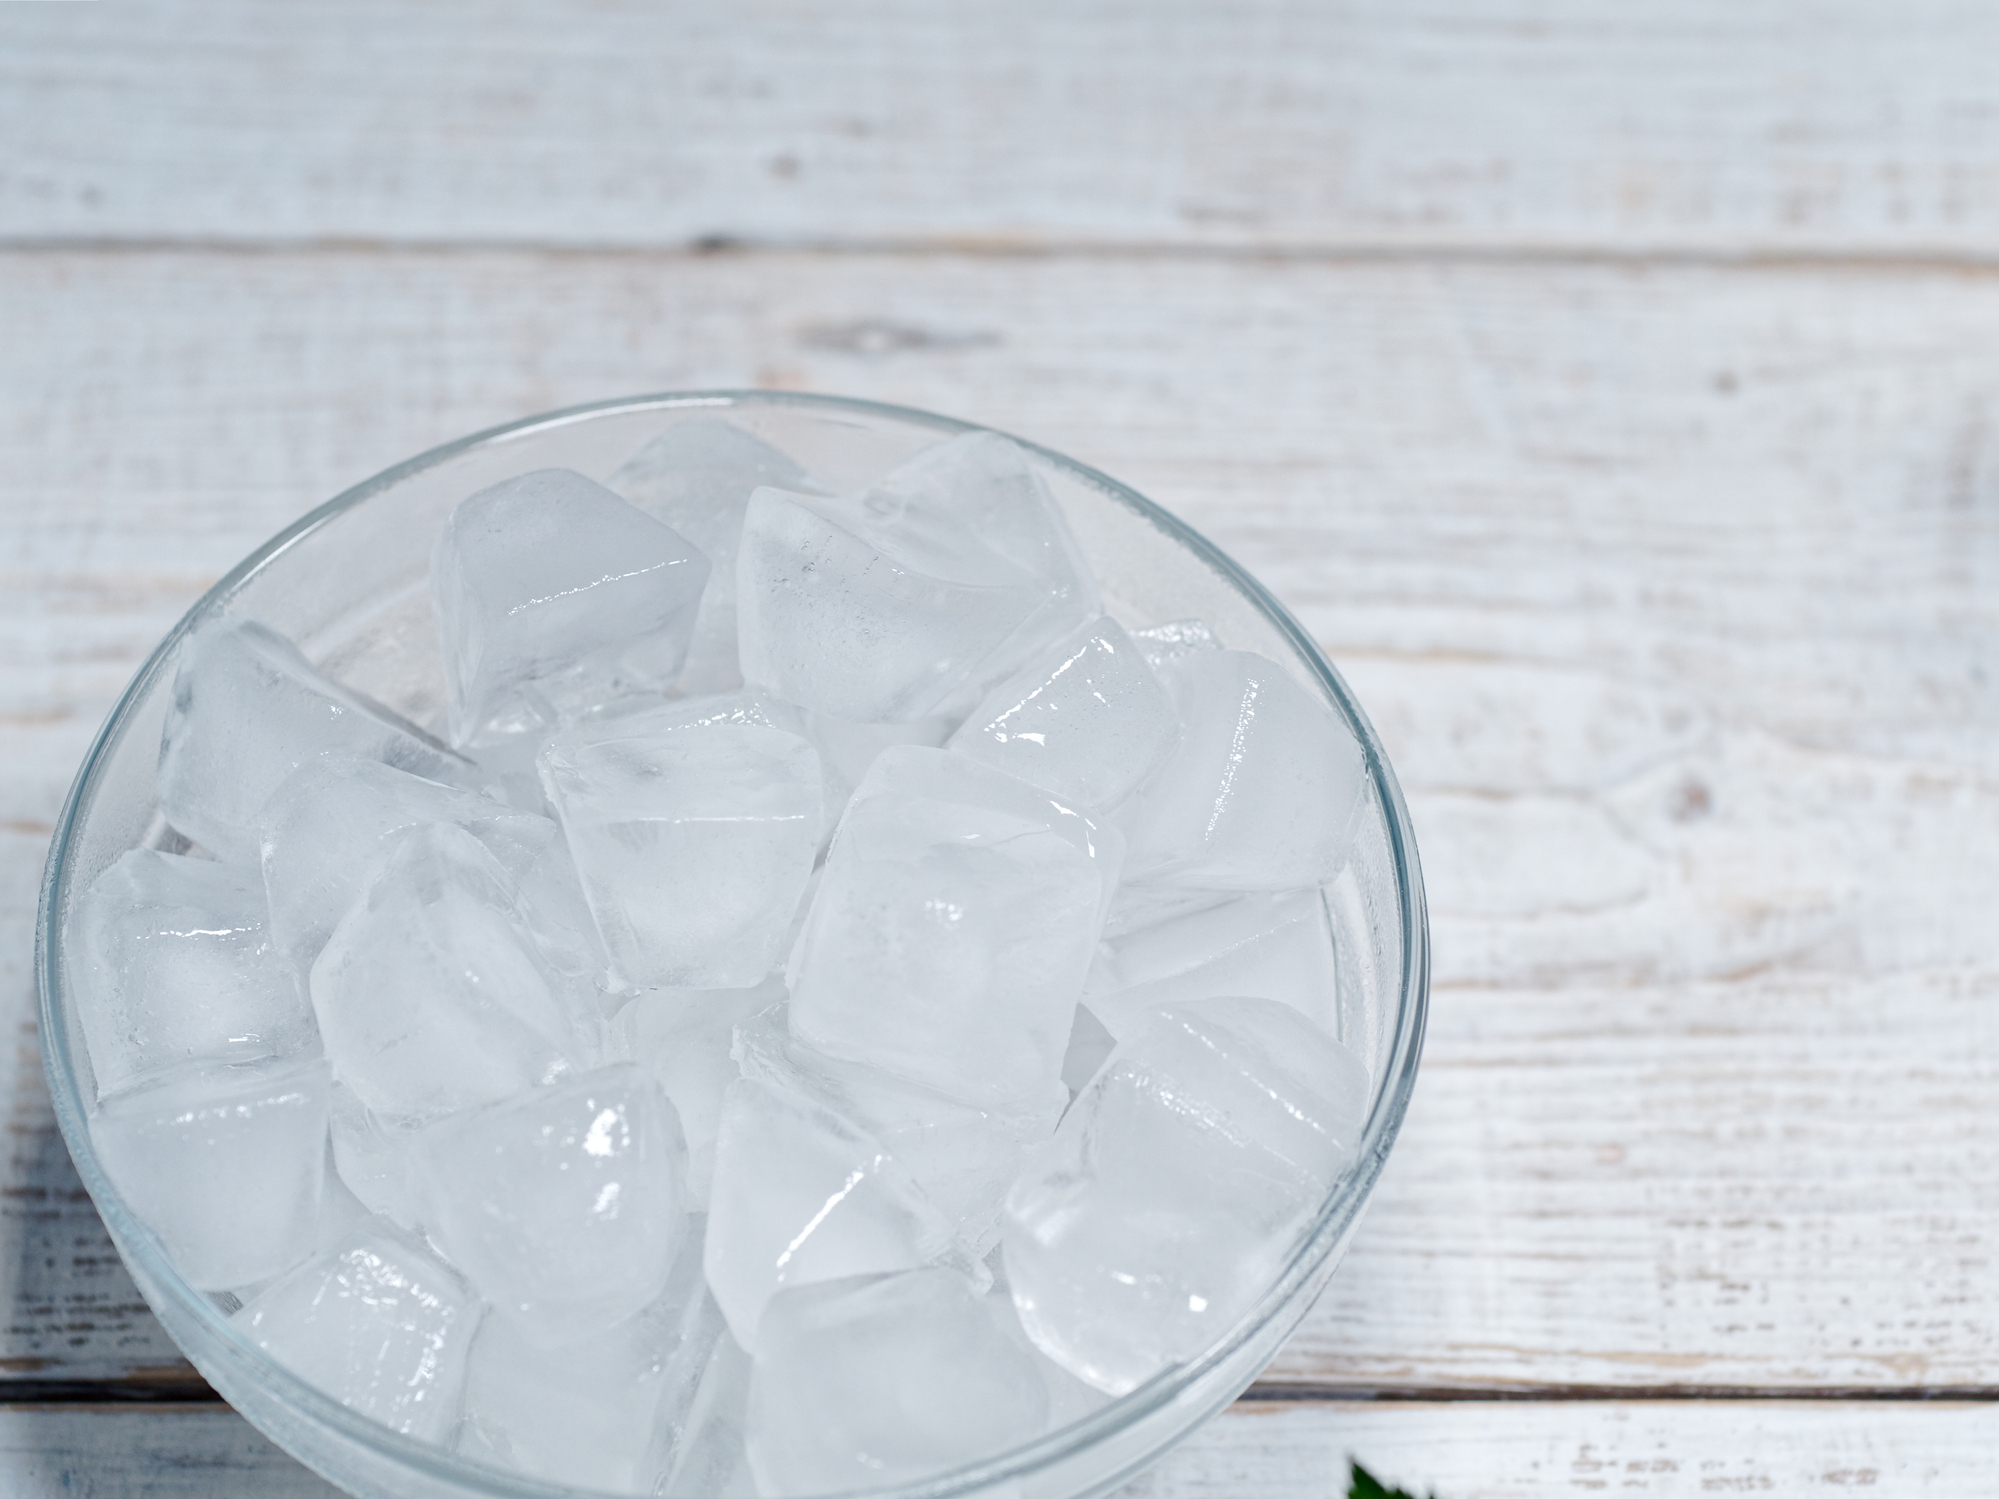 If it's hot but not humid, place a shallow bowl of ice in front of a fan and enjoy the breeze. As the ice melts, then evaporates, it will cool you off.